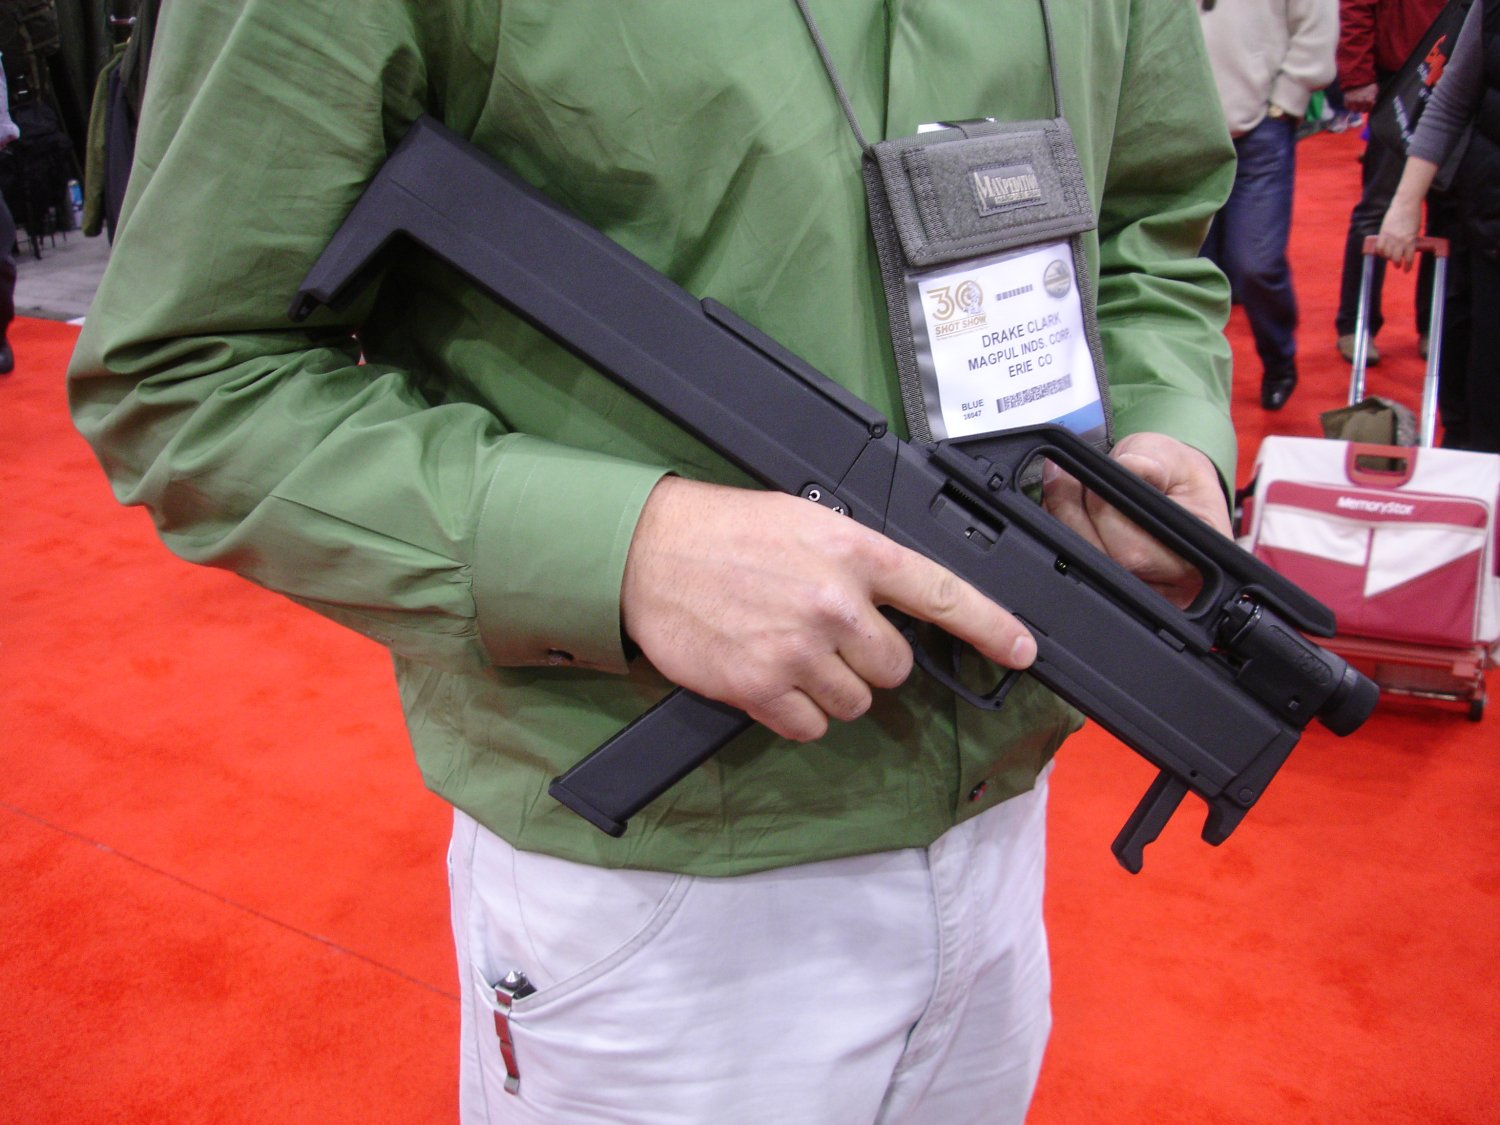 SHOTShow2008 MagPulGlockSubgun Open 1 2 01 2 08 <!  :en  >MagPul FMG9: Prototype 9mm Folding Submachine Gun<!  :  >